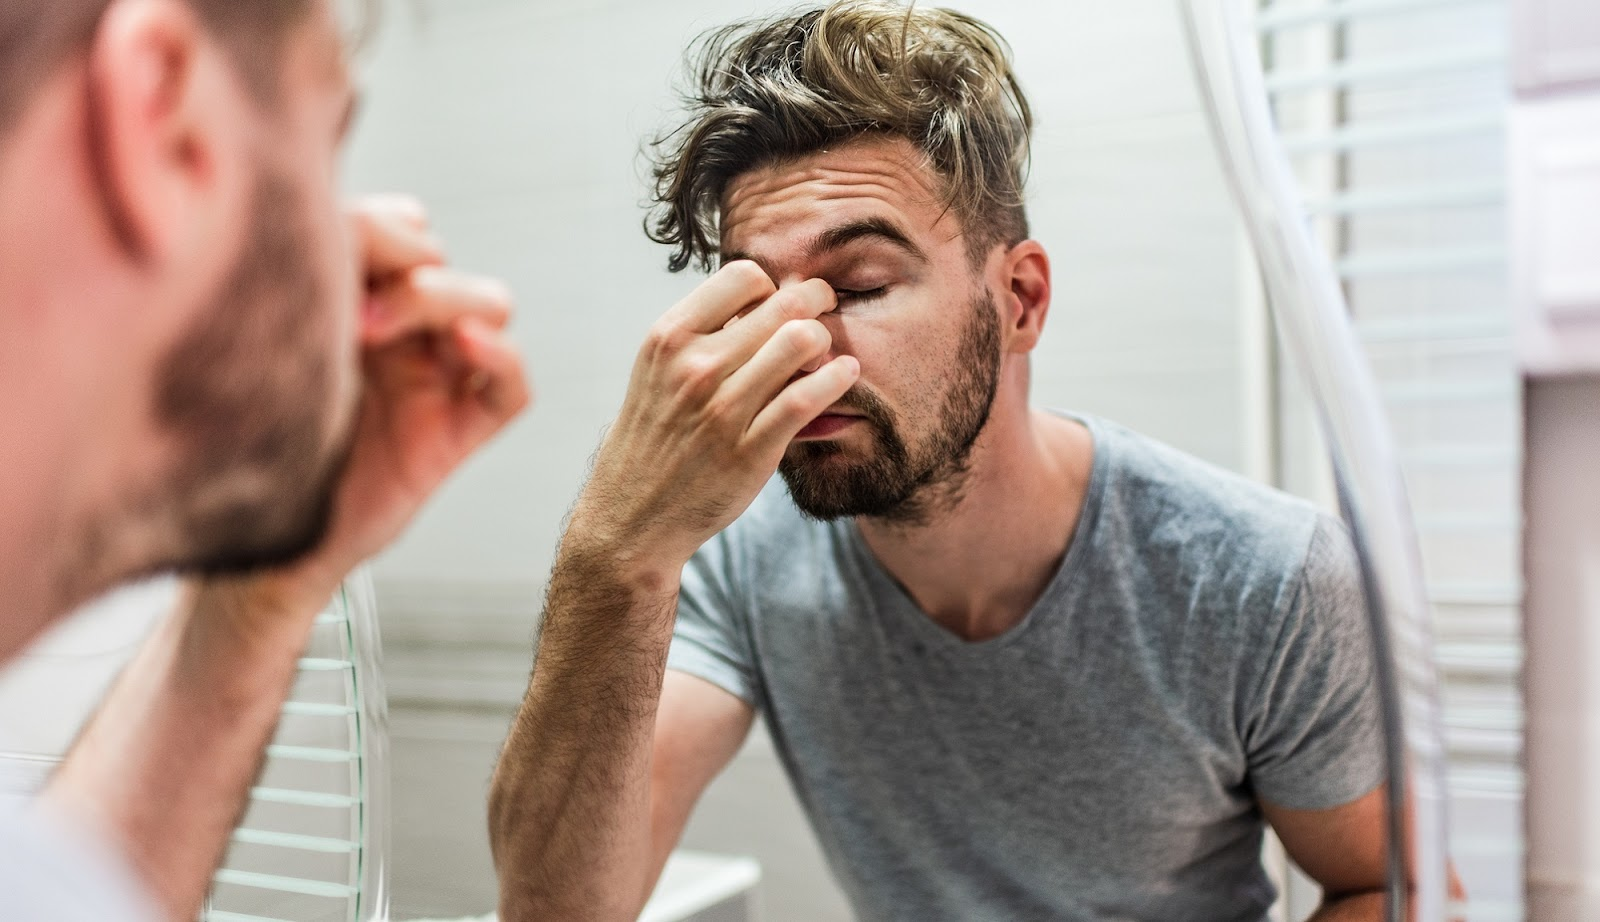 What is nasal congestion?